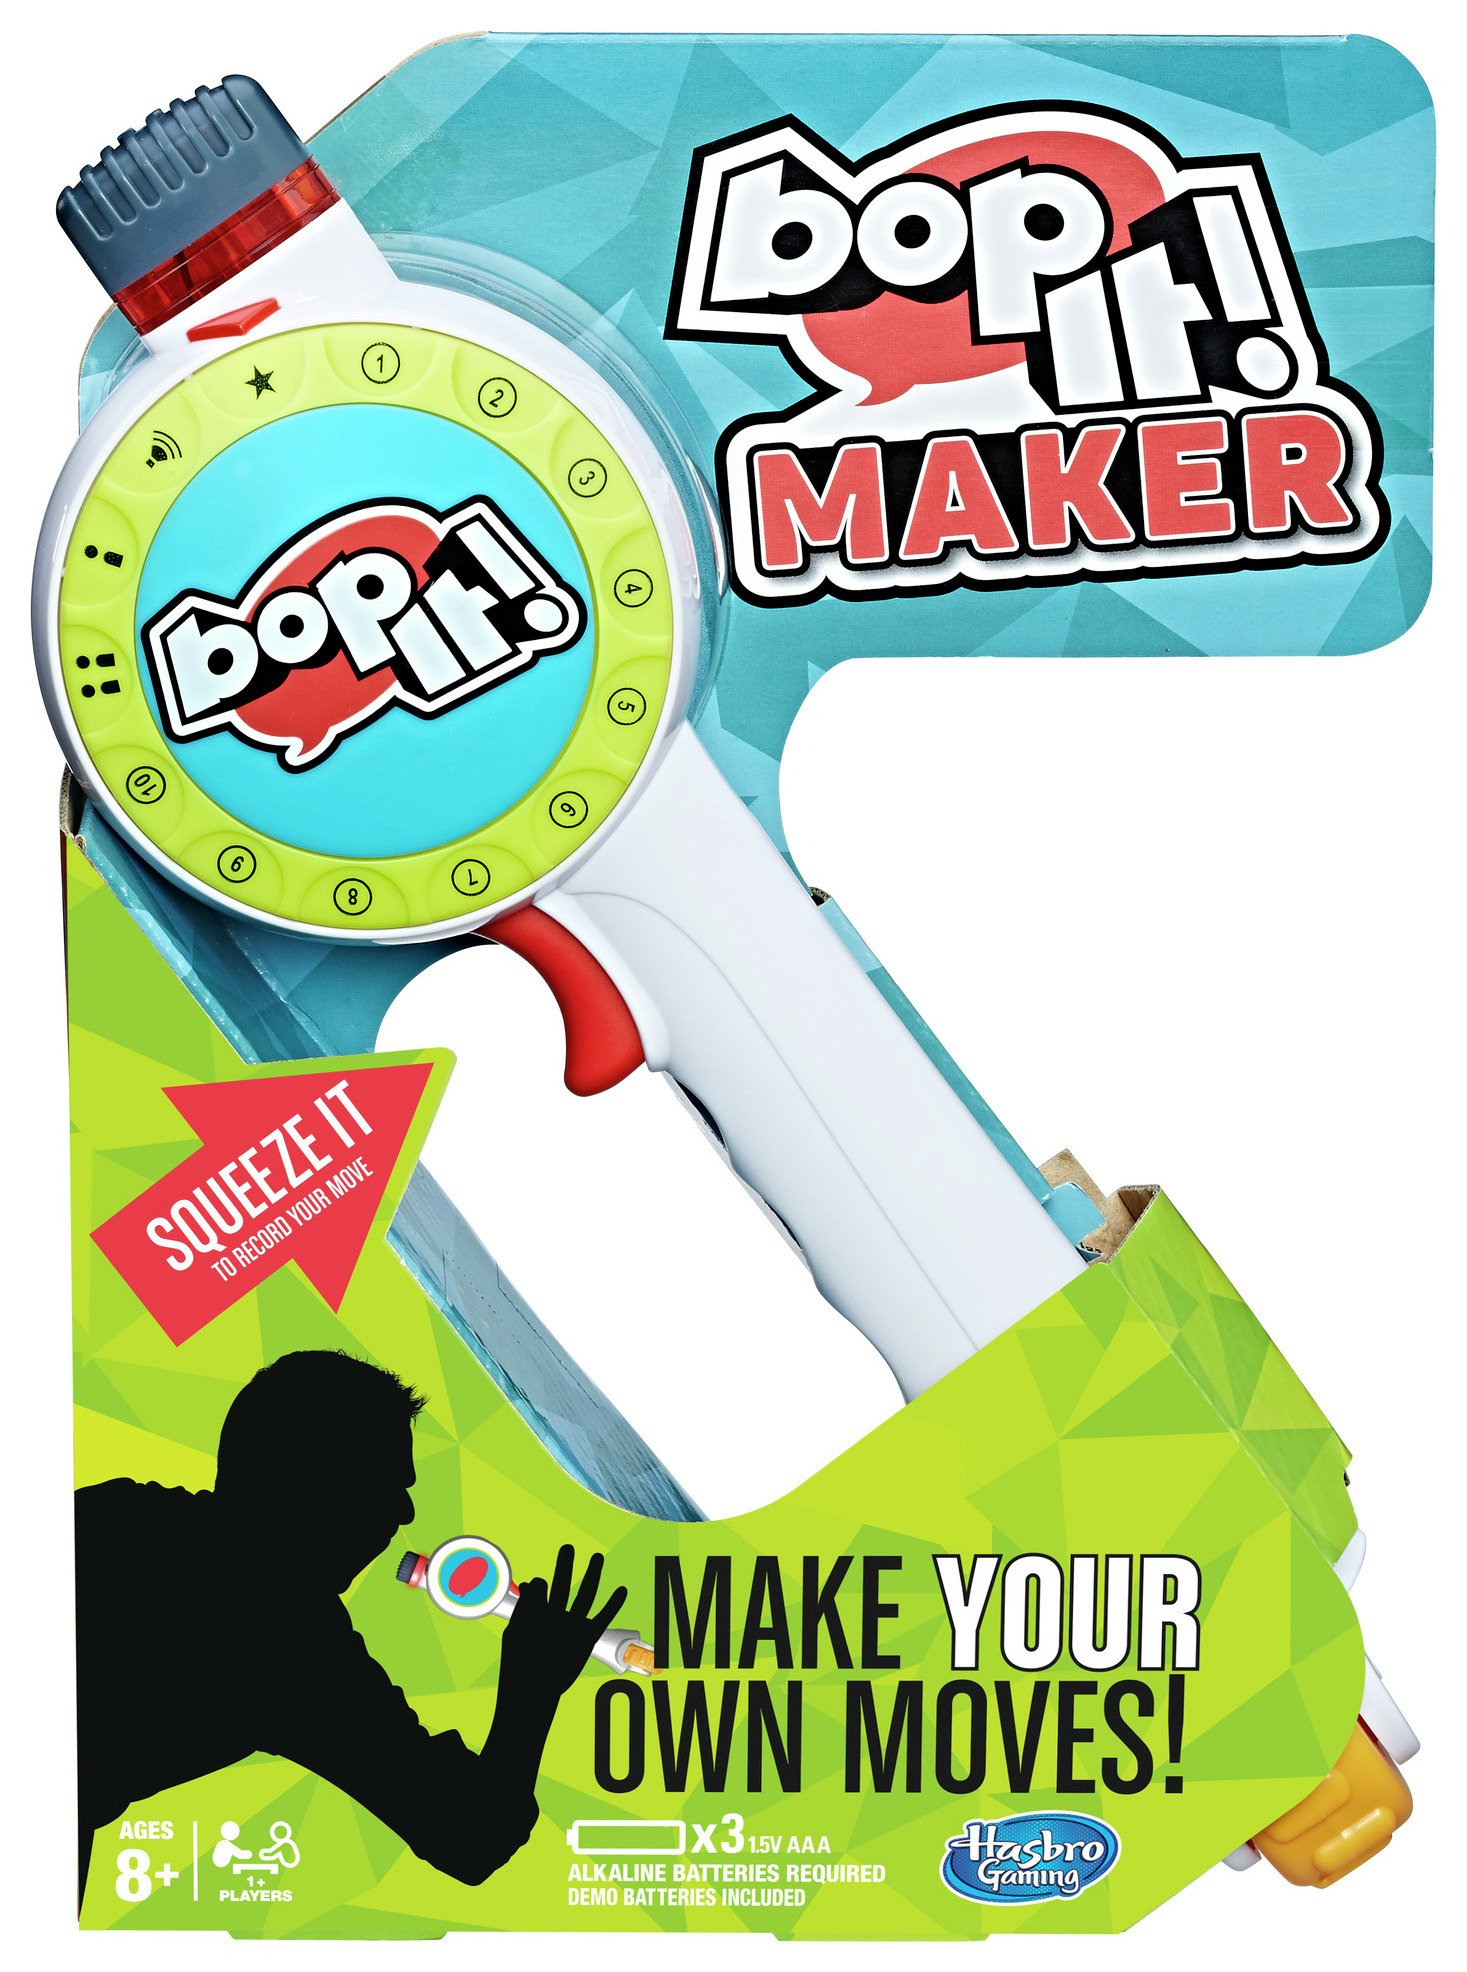 Image of Bop It! Maker Game from Hasbro Gaming